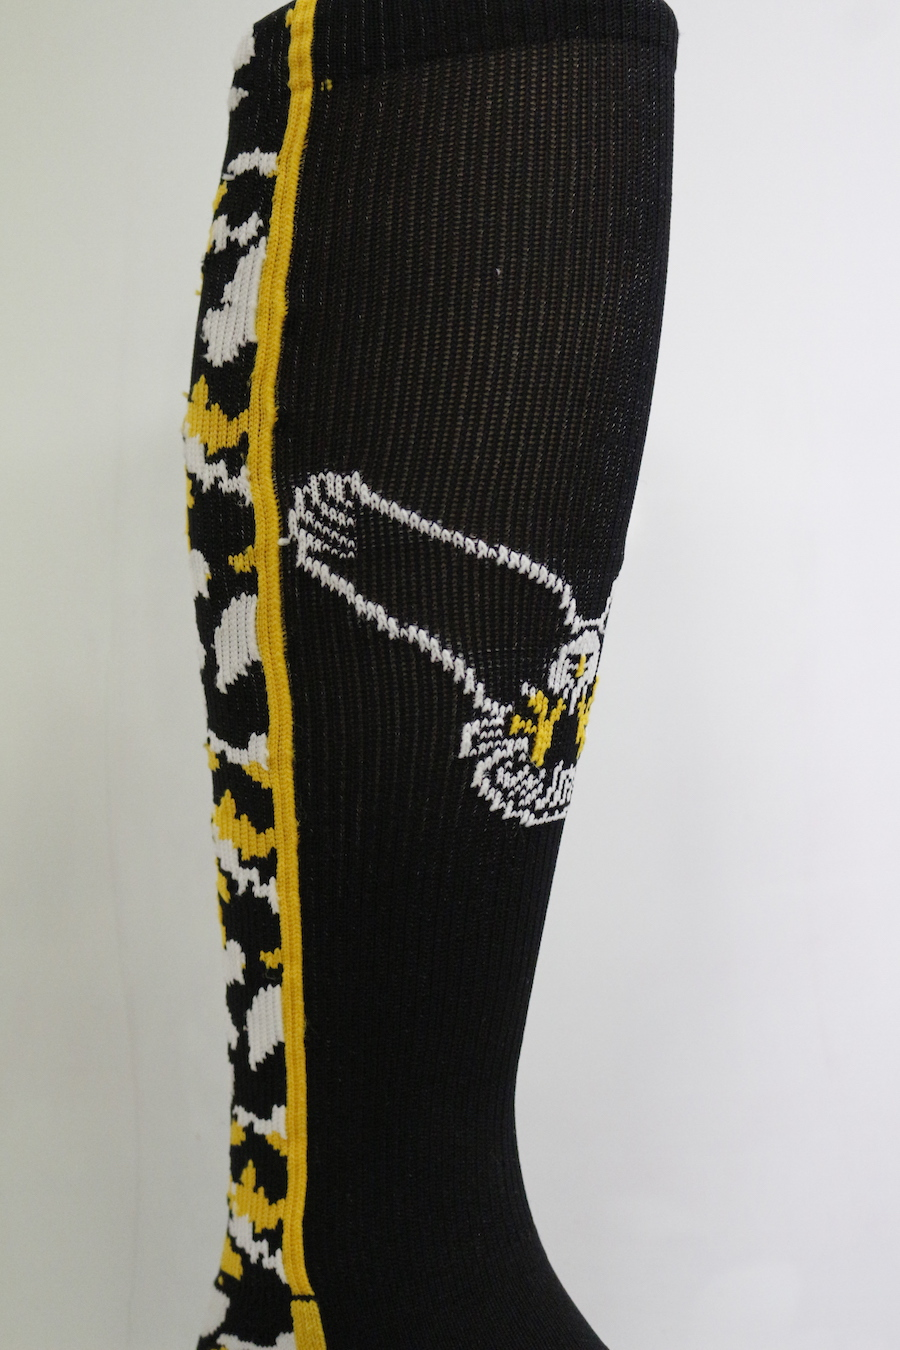 gallery example sock eagle with stripe